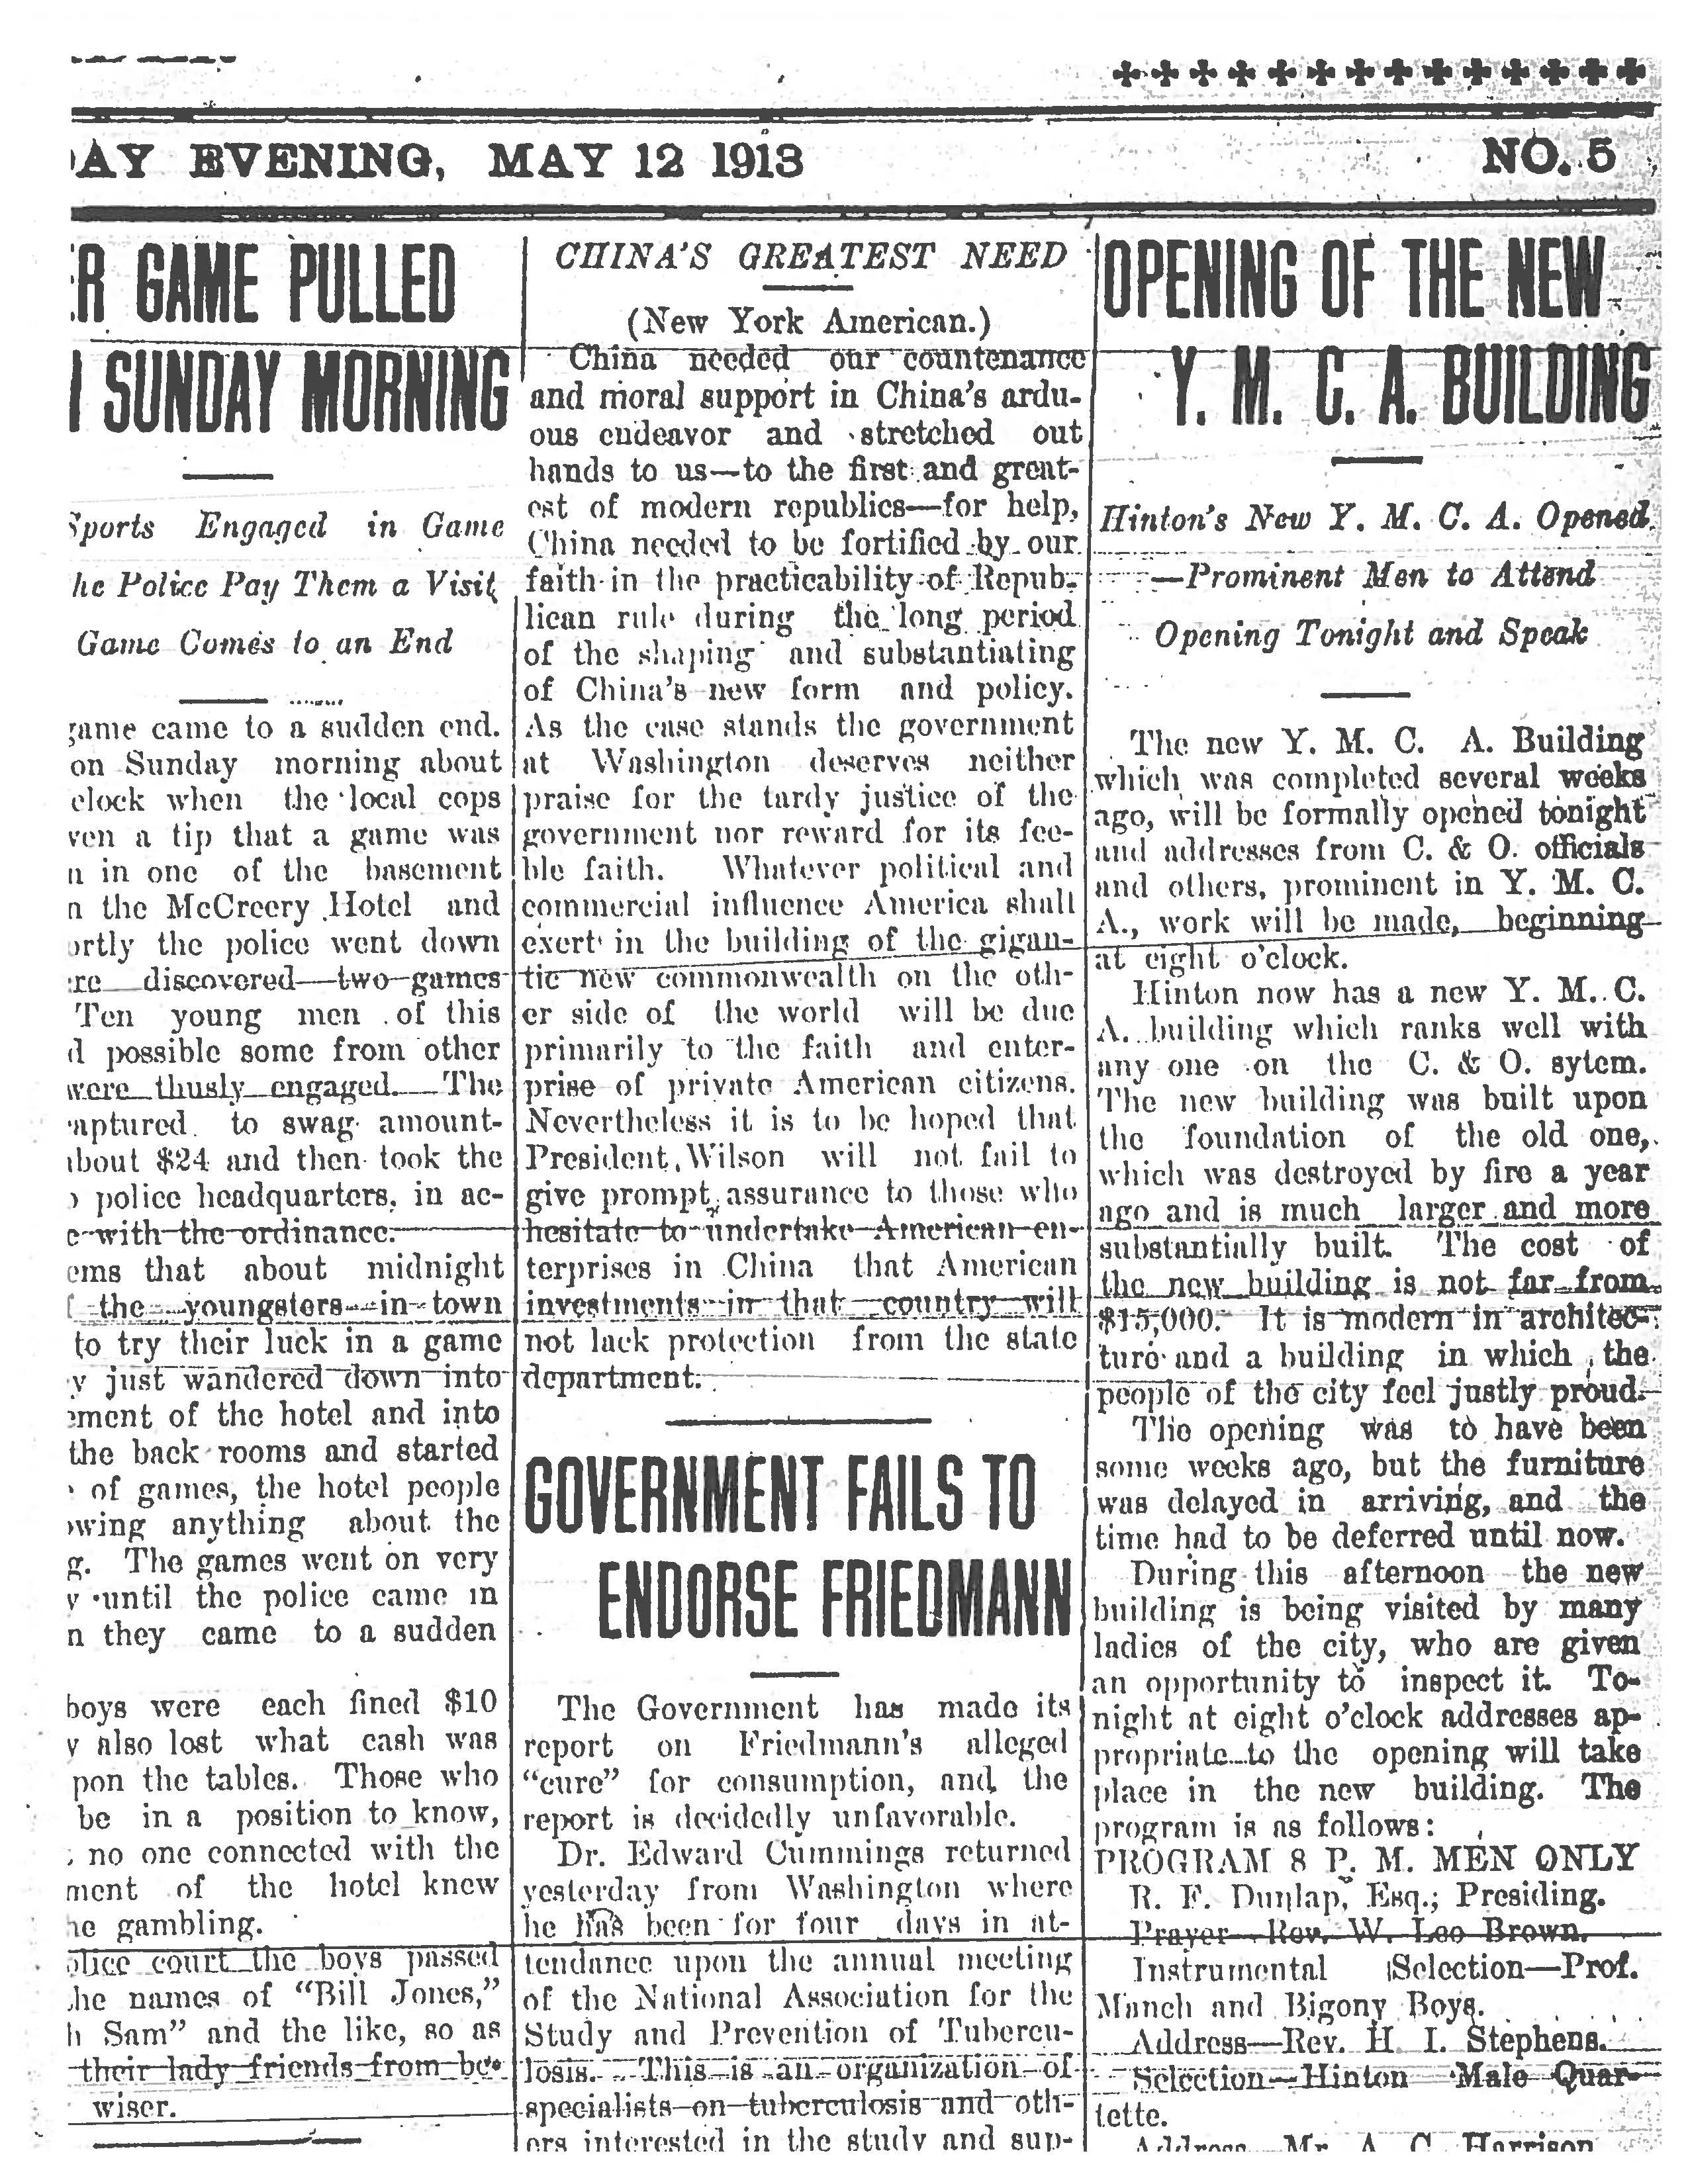 May 1913 newspaper article about the opening of the new YMCA building after the 1911 fire.